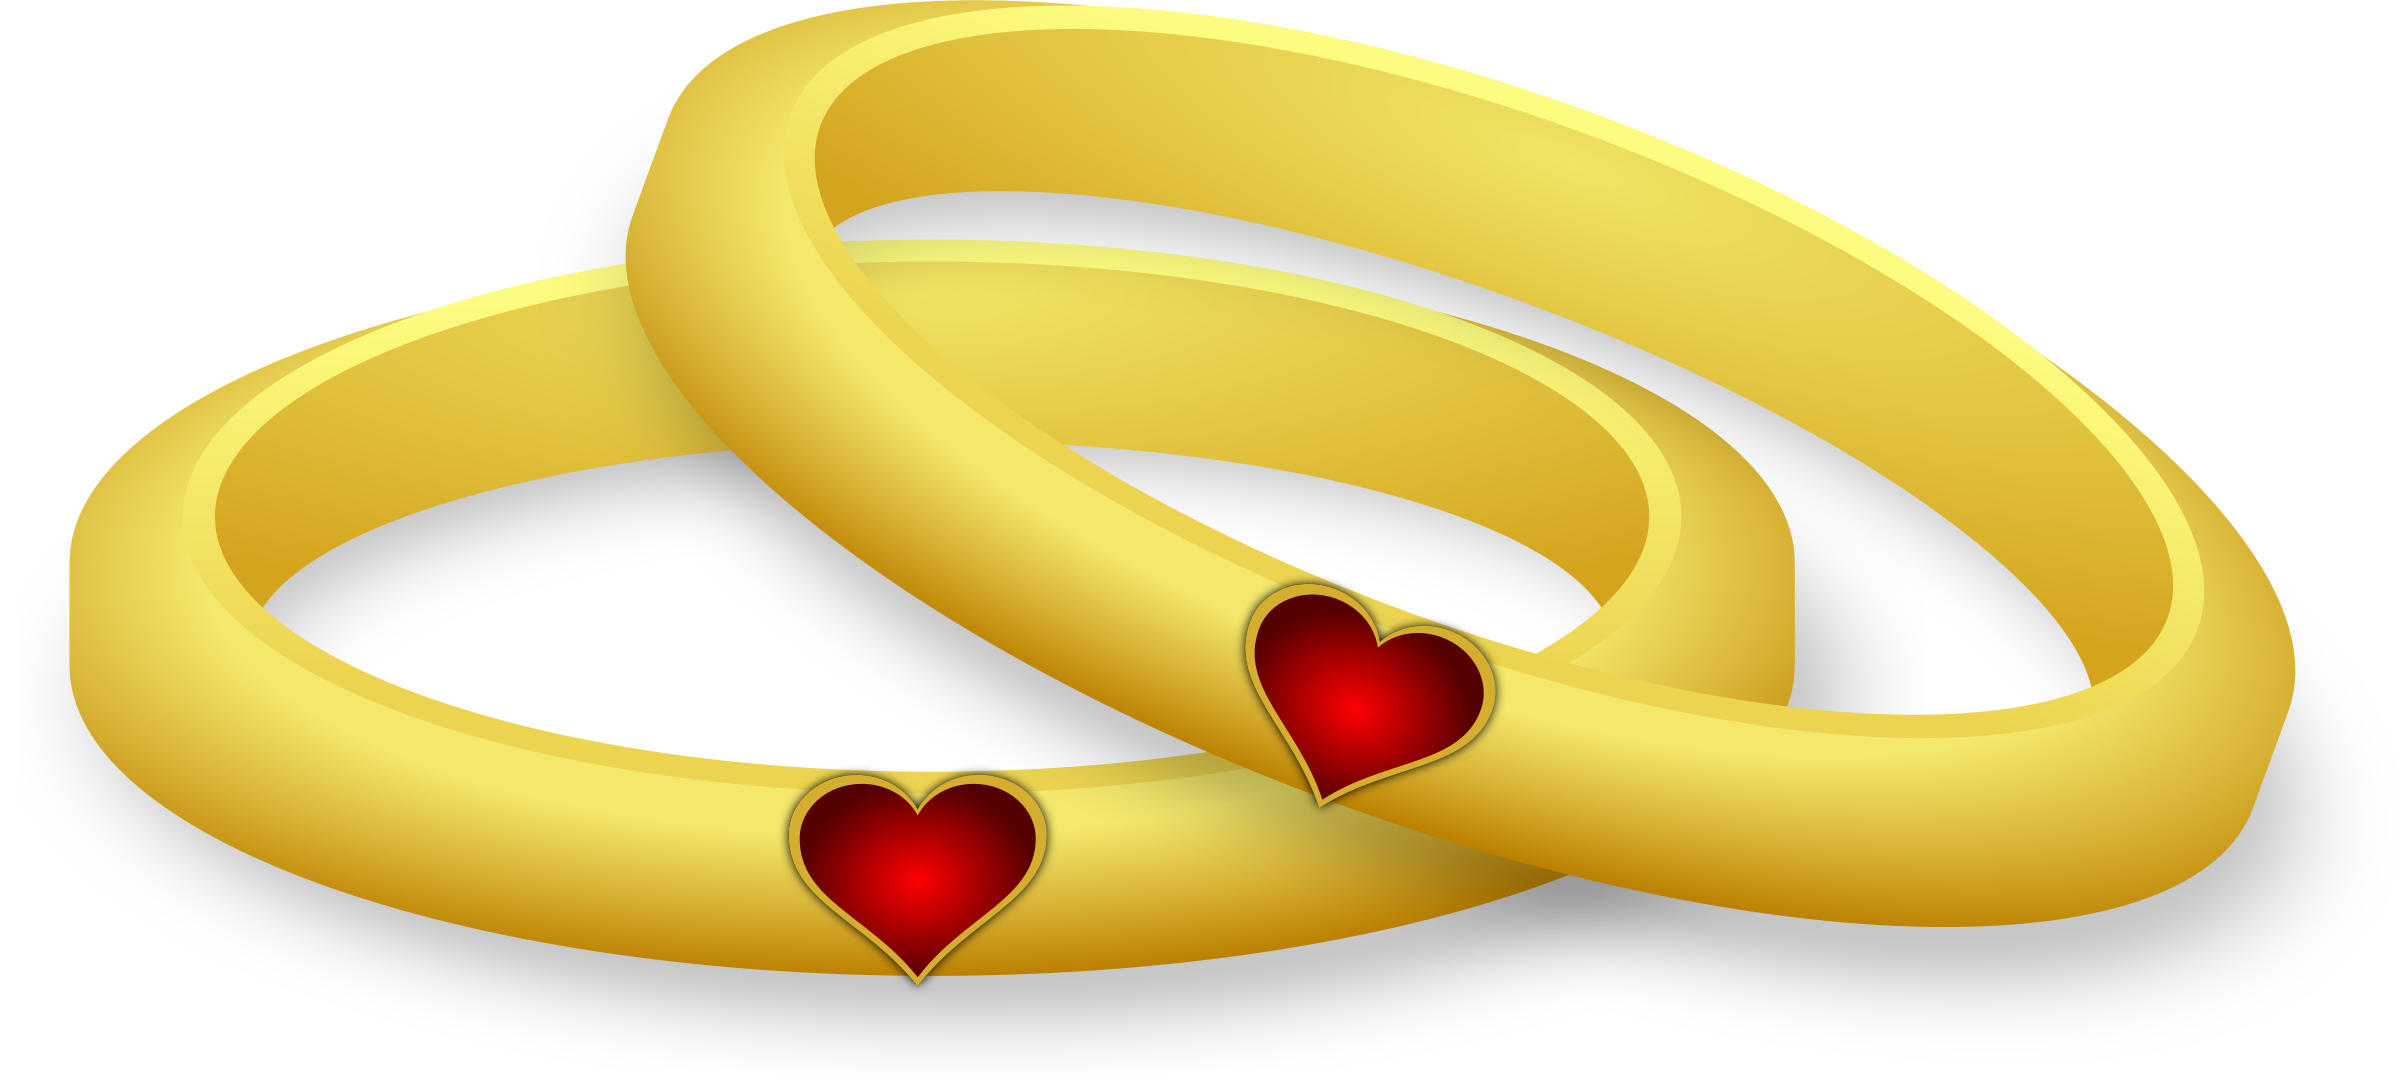 wedding ring - Wedding Ring Clipart